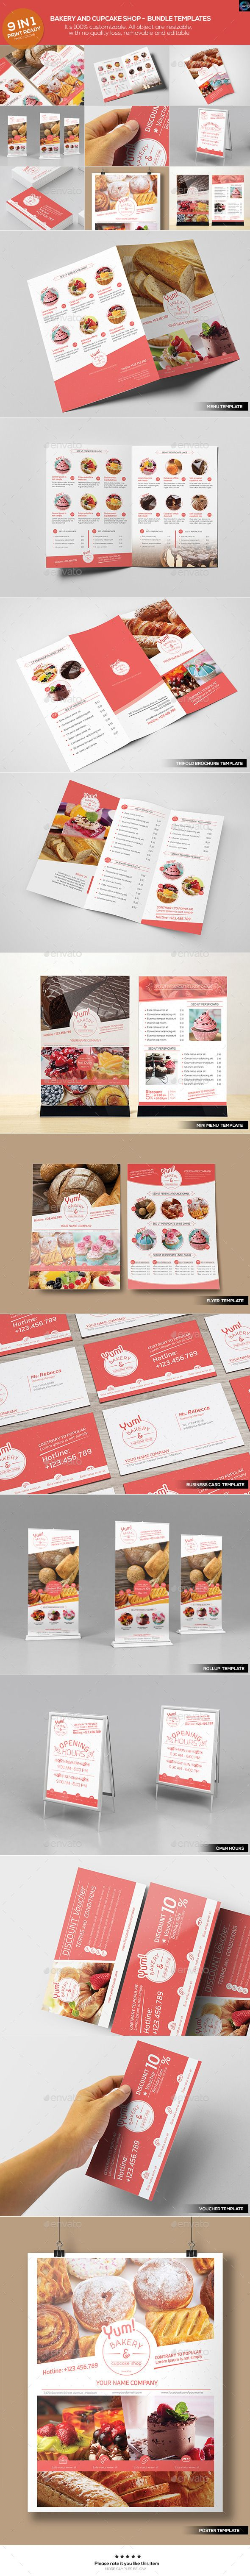 Bakery & Cupcake Shop - price $18